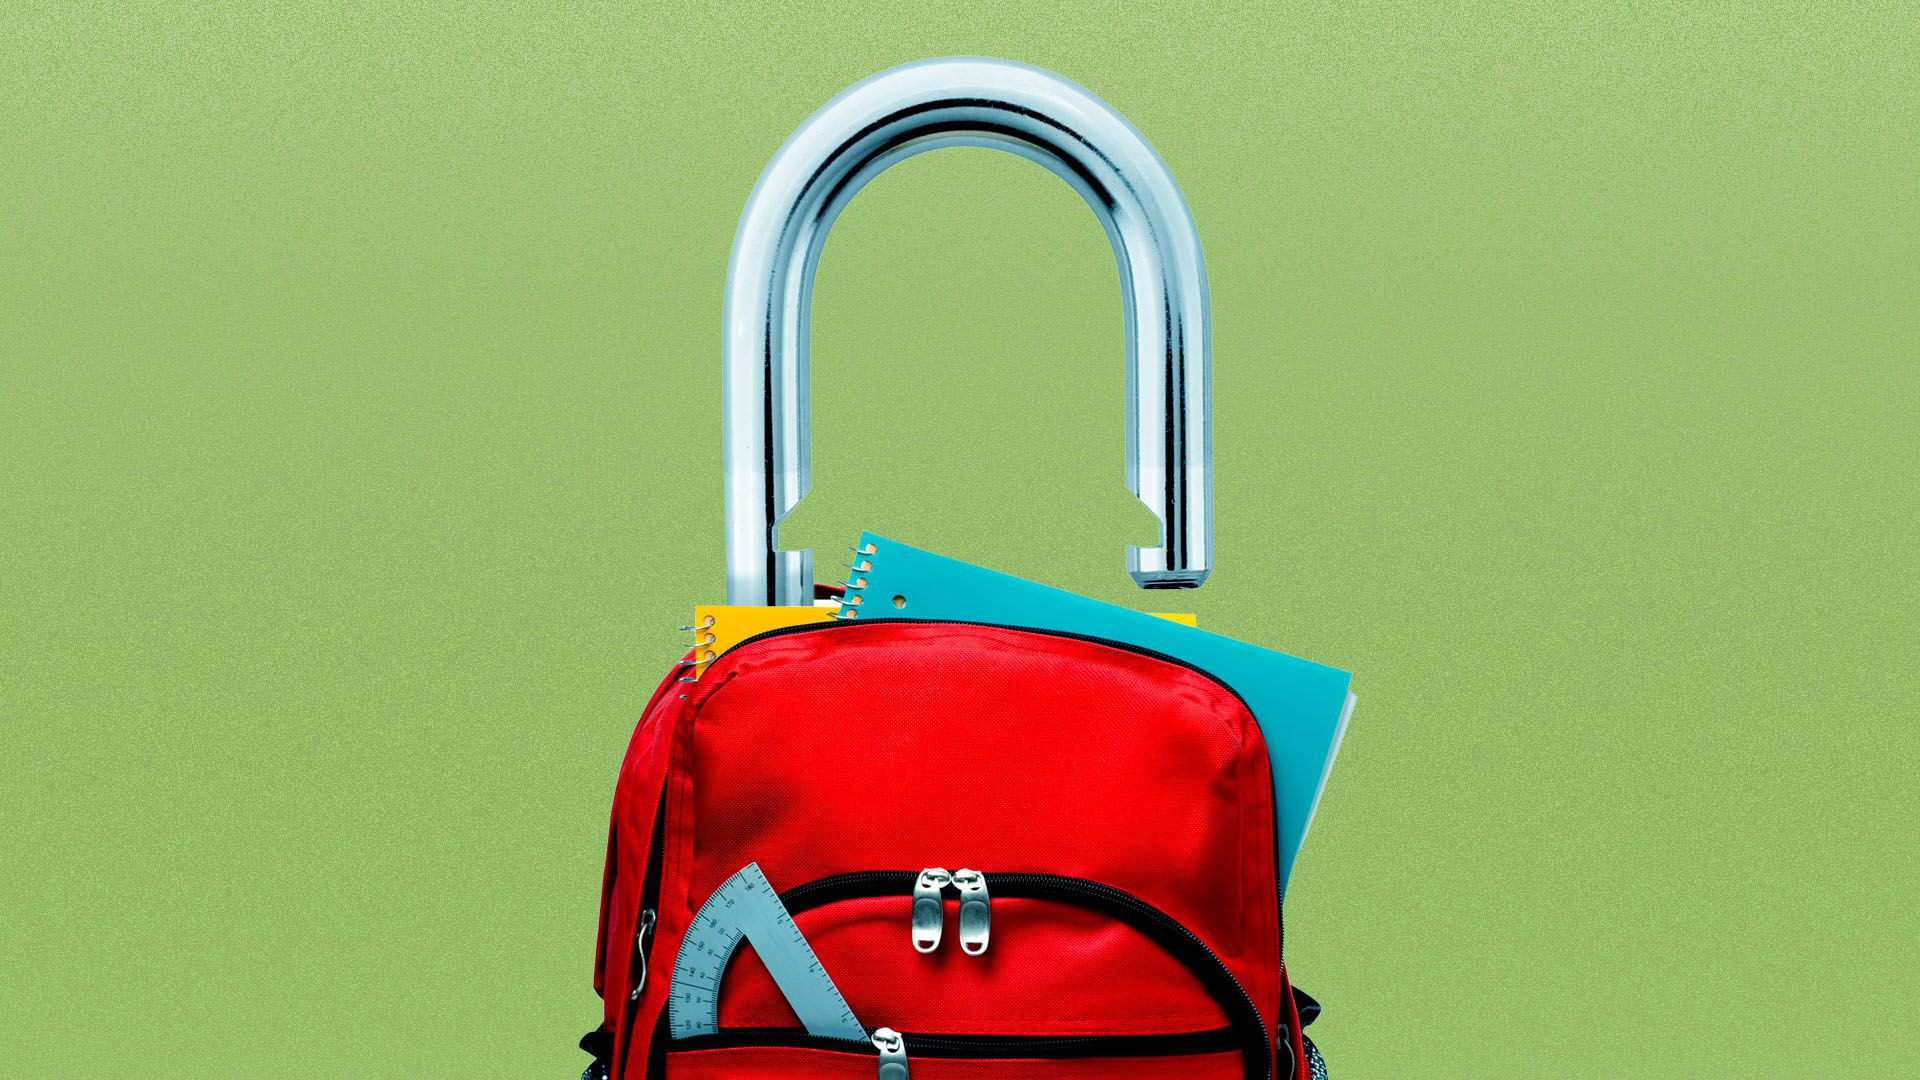 Illustration of a backpack with an open lock coming out of the top